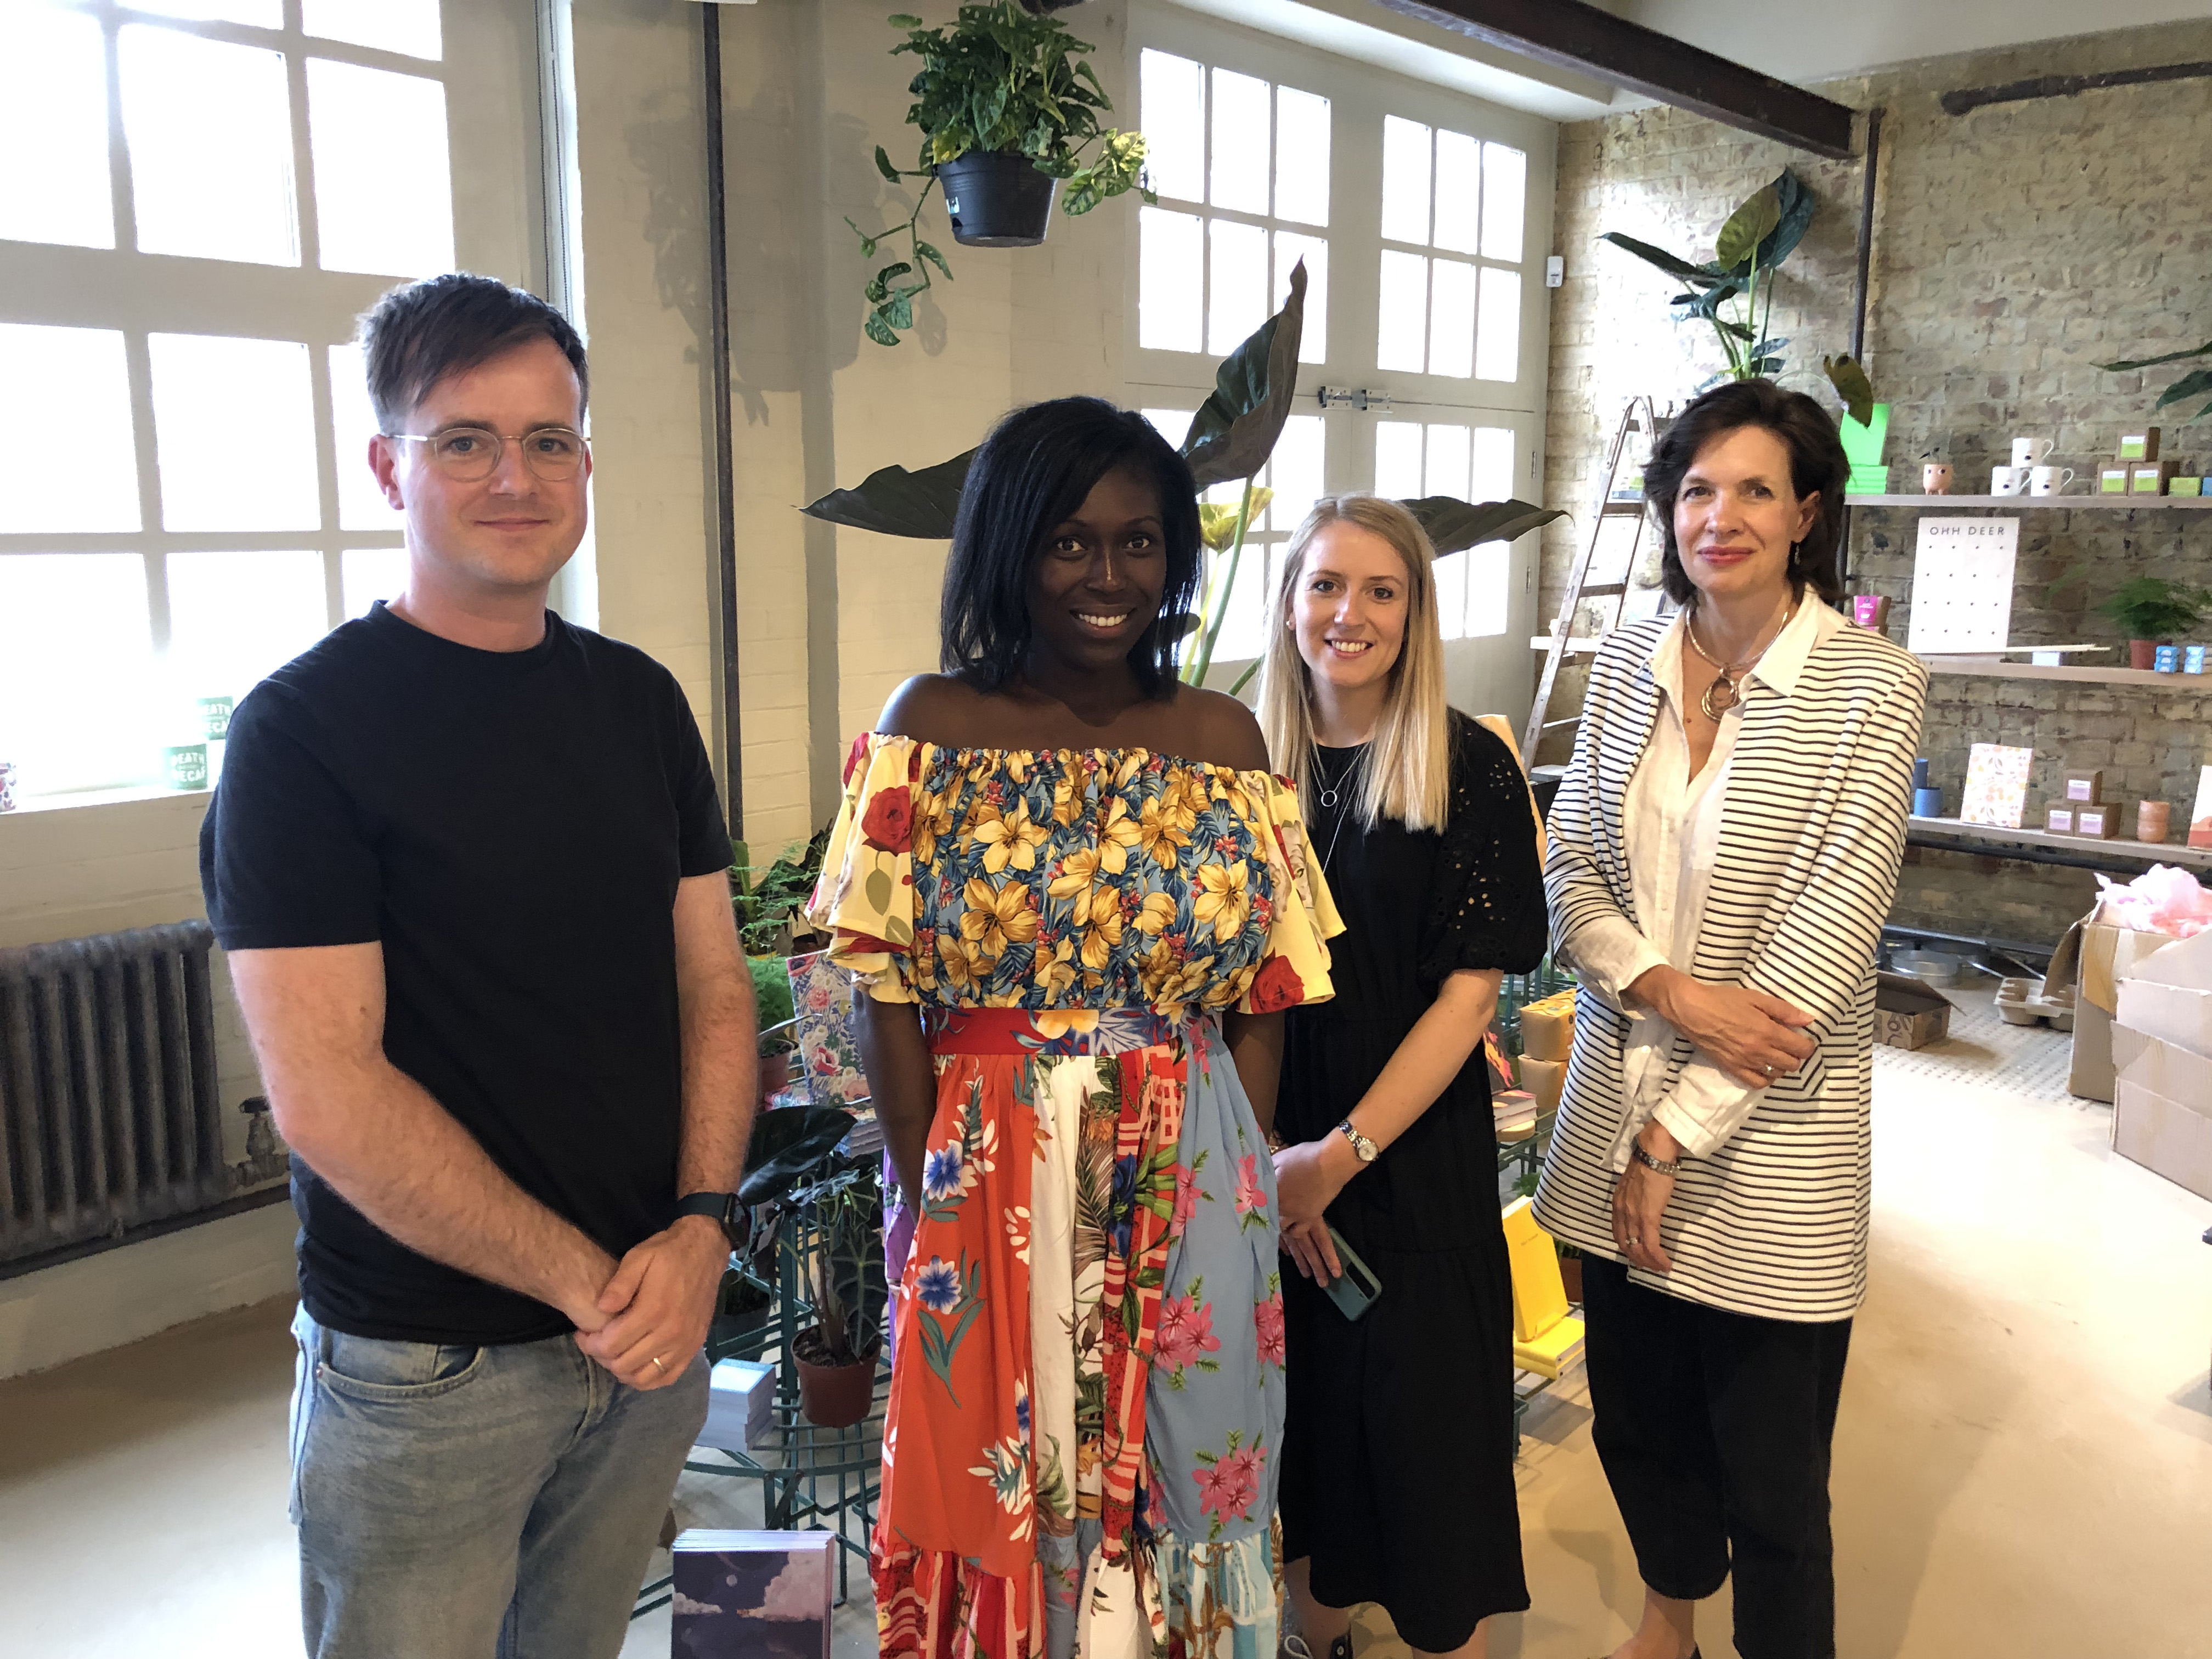 Above: Sainsbury's buyer Emma Tanner (second right) met in person with the GCA's Amanda Fergusson (far right) and Ohh Deer's md Mark Callaby and Adriana Lovesy (owner of Mrs Lovesy), the latter two being GCA Council members and also on the GCA Diversity and Inclusion sub-committee.